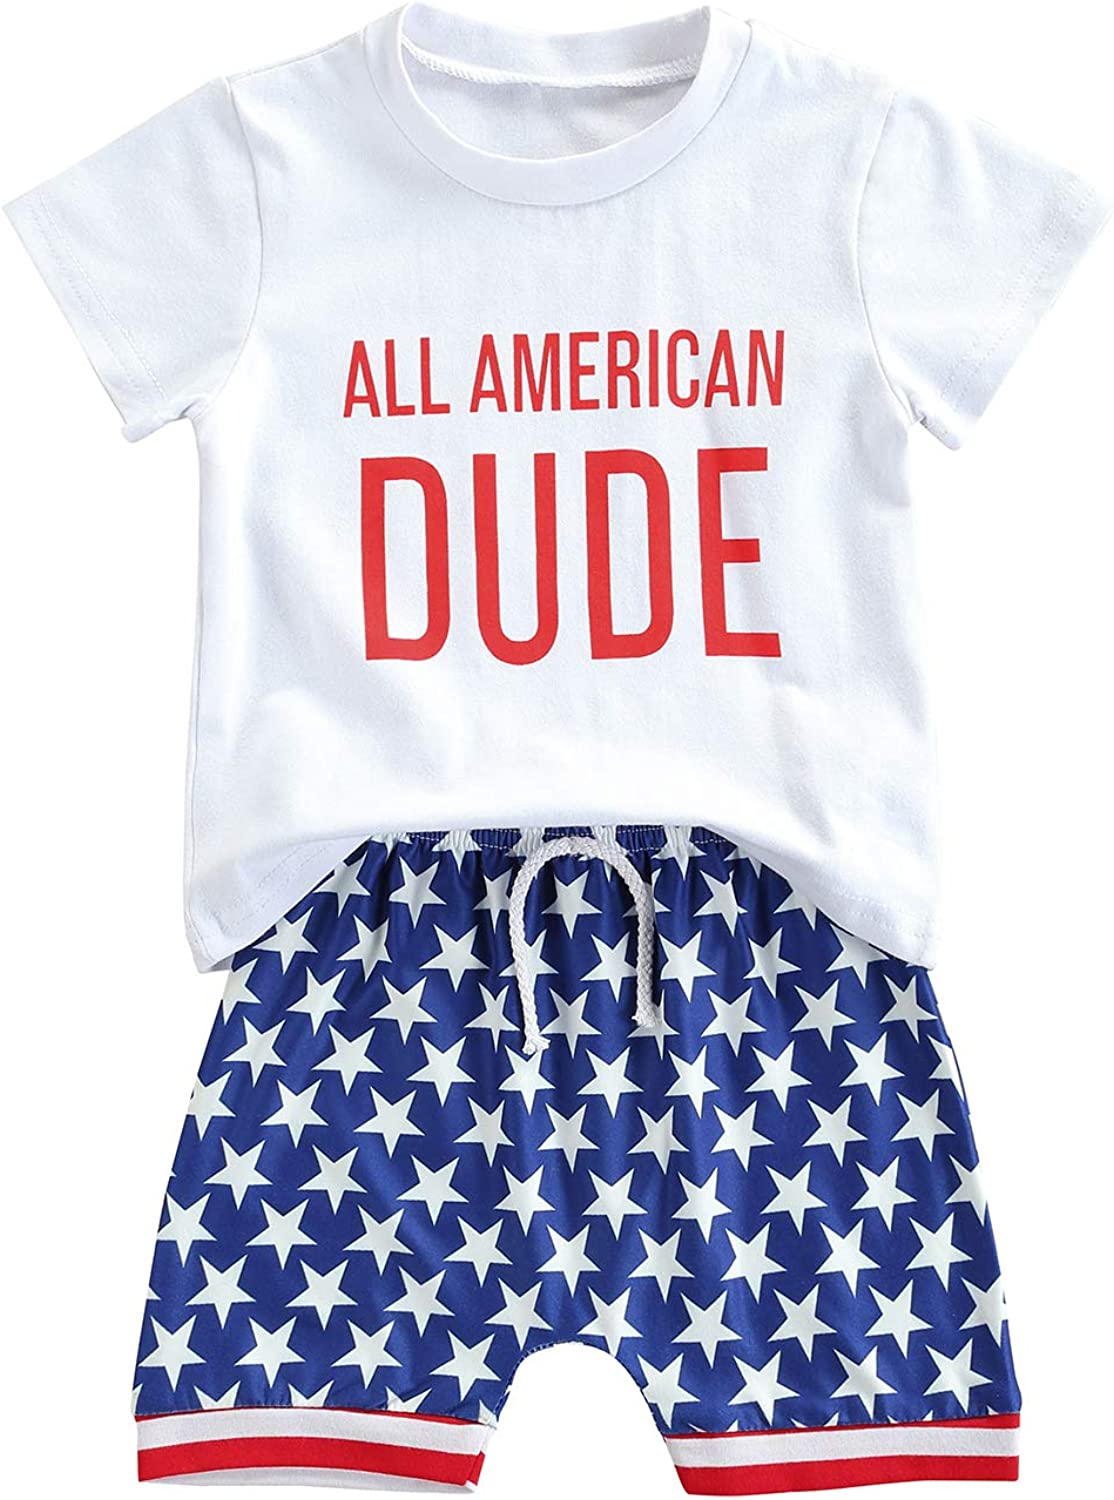 Toddler Baby Boy Summer Outfit Short Sleeve T-Shirt Top and Shorts Sets 2Pcs Playwear 0-4T